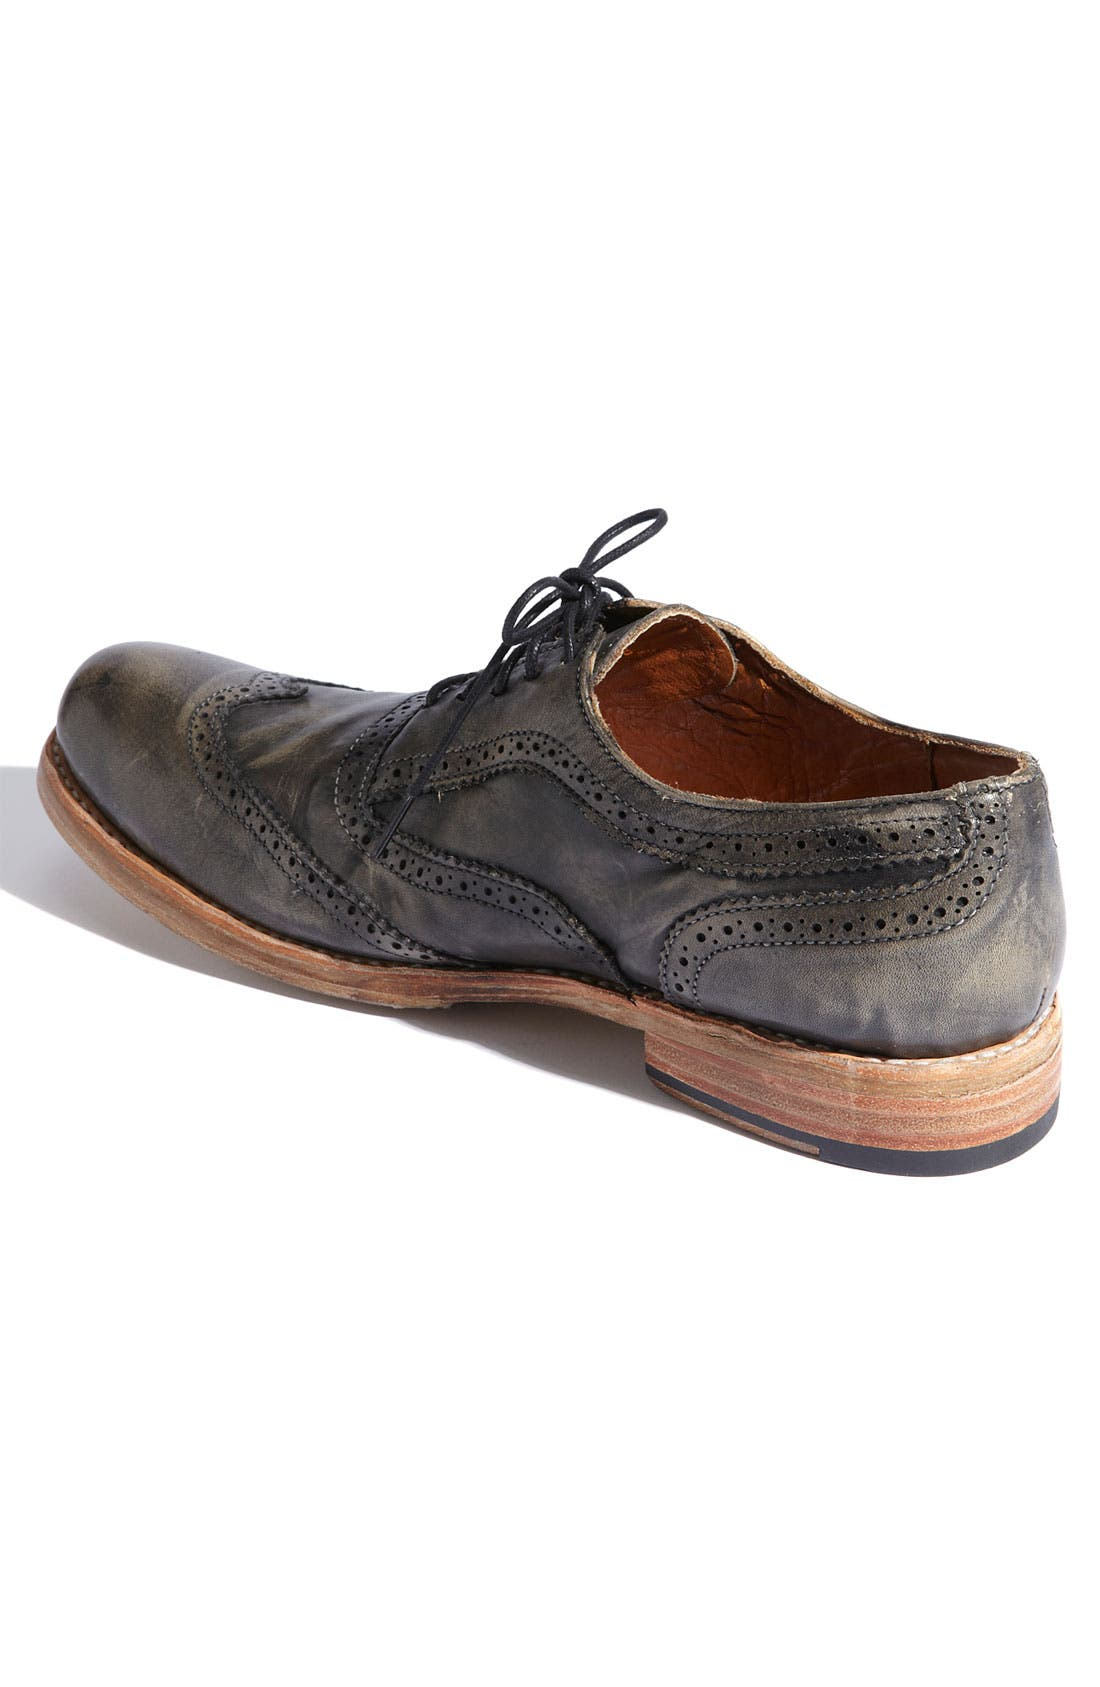 'Corsico' Wingtip Oxford,                             Alternate thumbnail 2, color,                             001